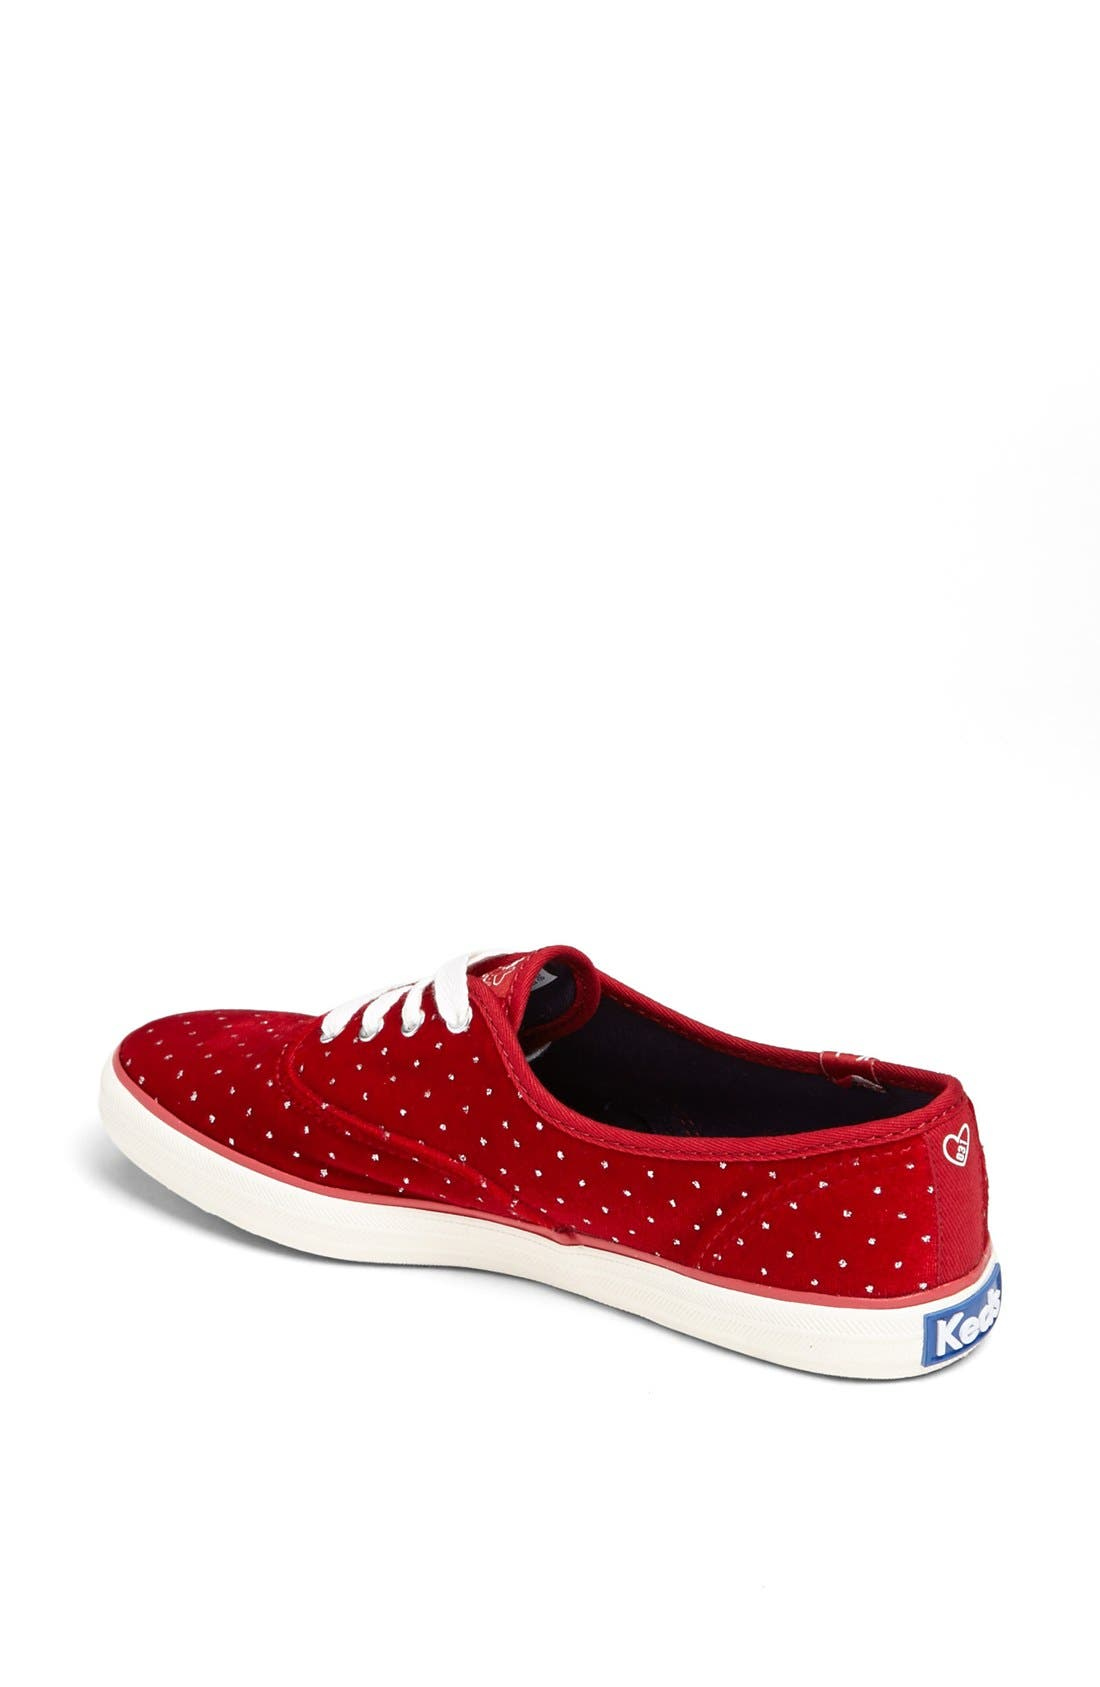 Alternate Image 2  - Keds® Taylor Swift 'Velvet Glitter' Champion Sneaker